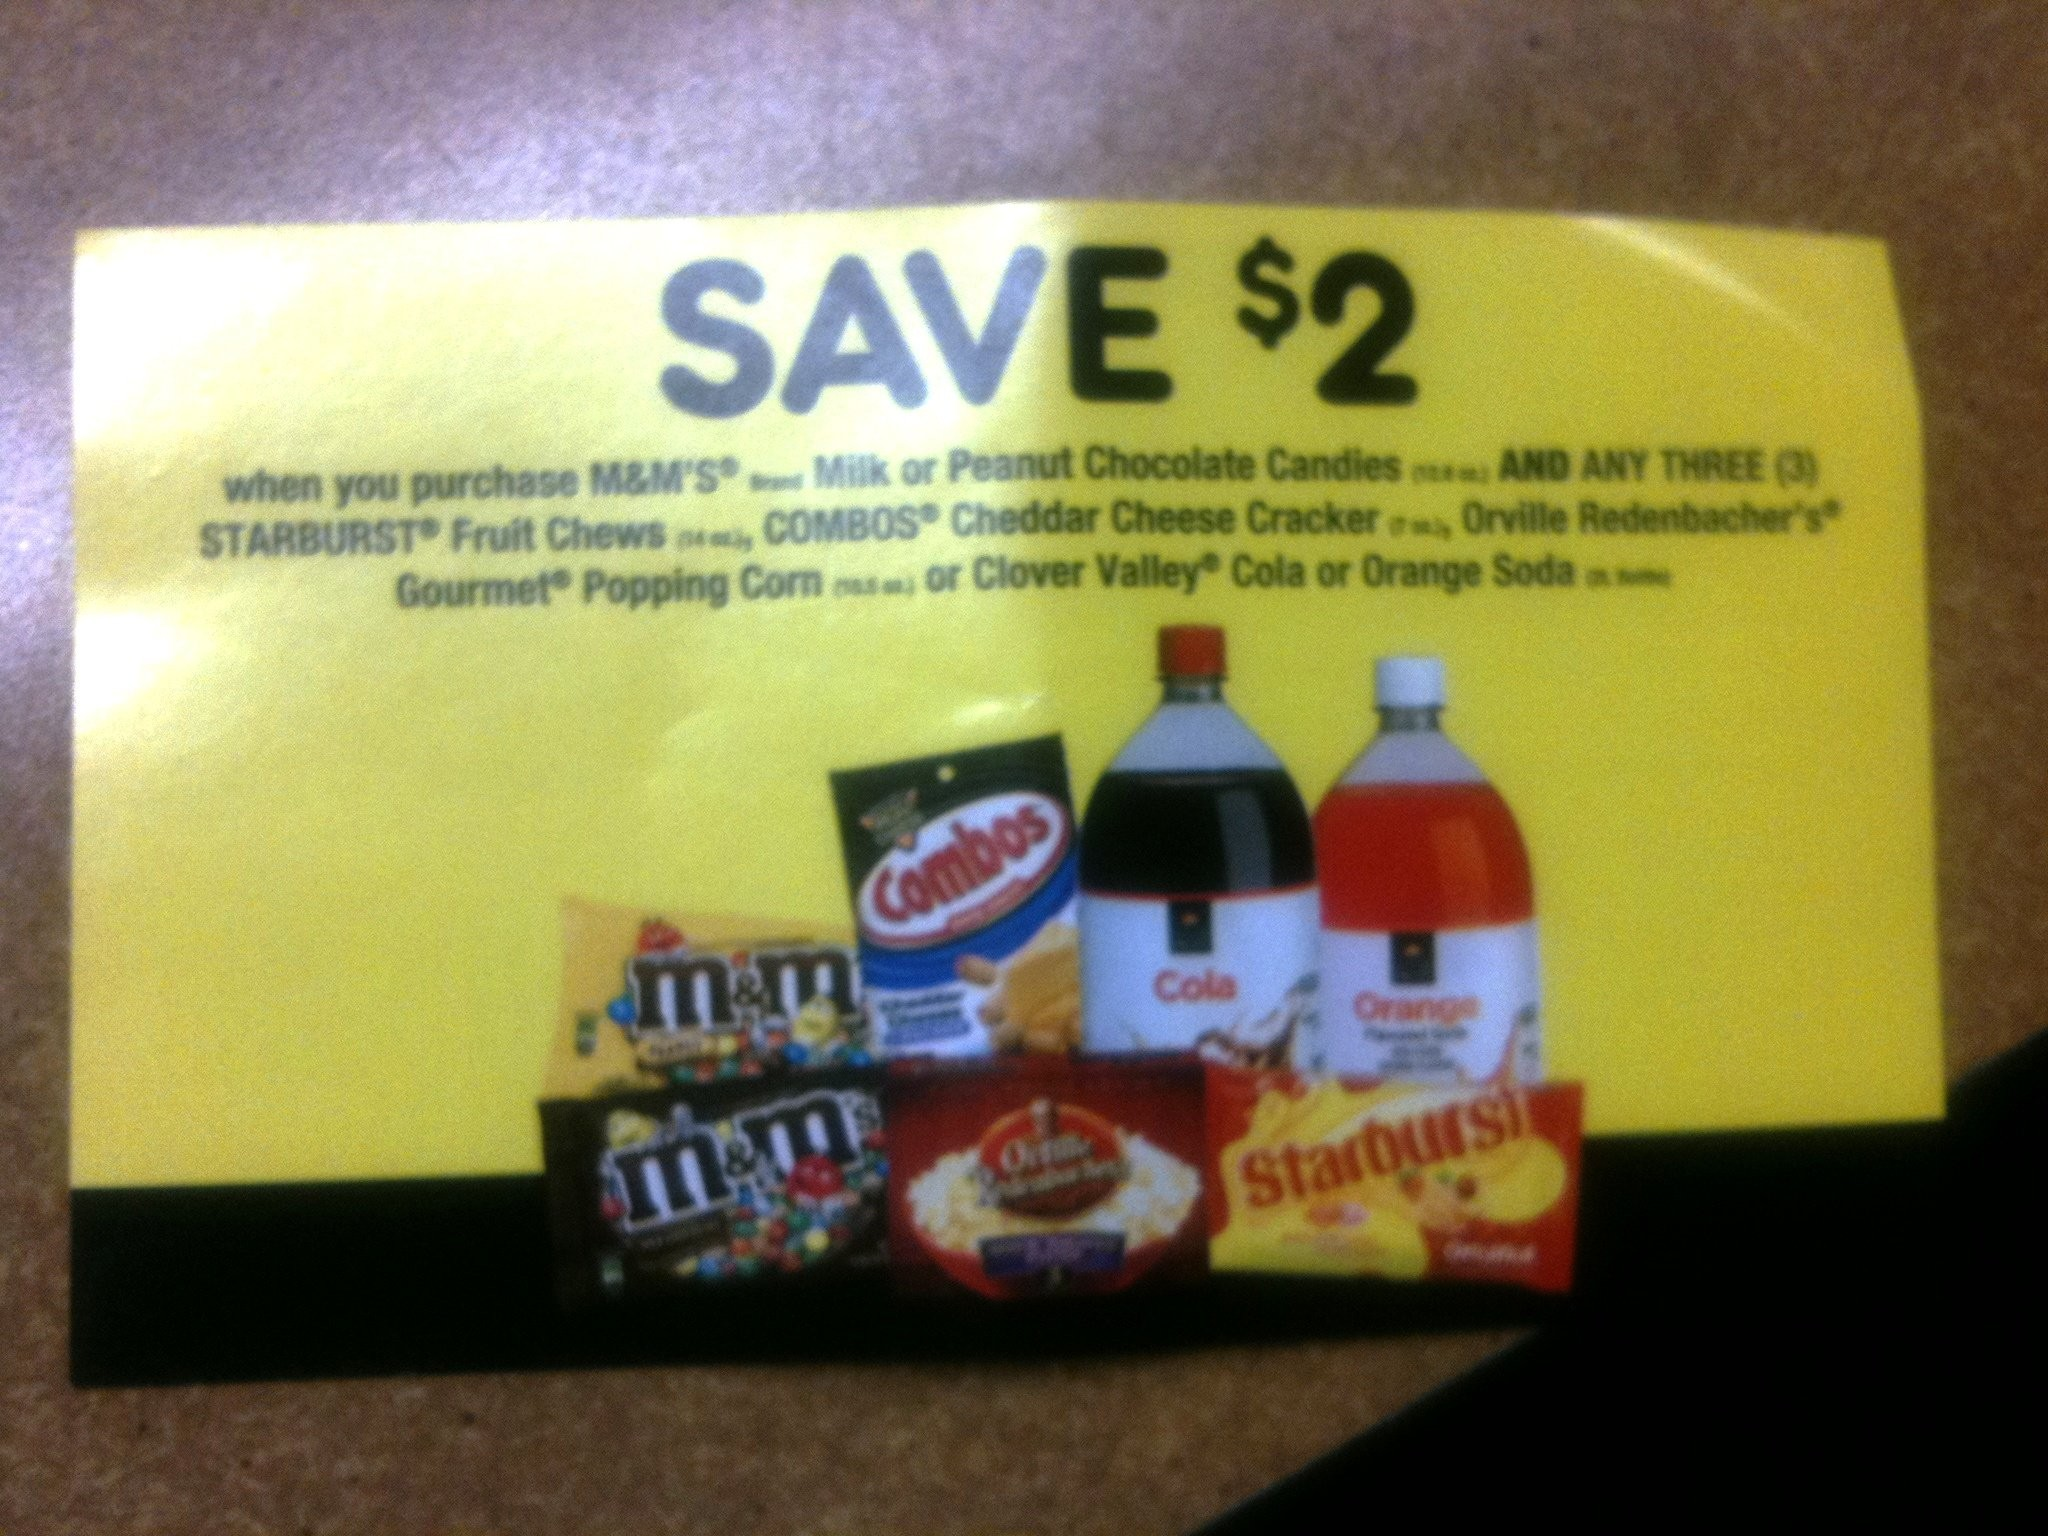 Dollar General Coupon Alert -- Save $2 with M&Ms, Candy